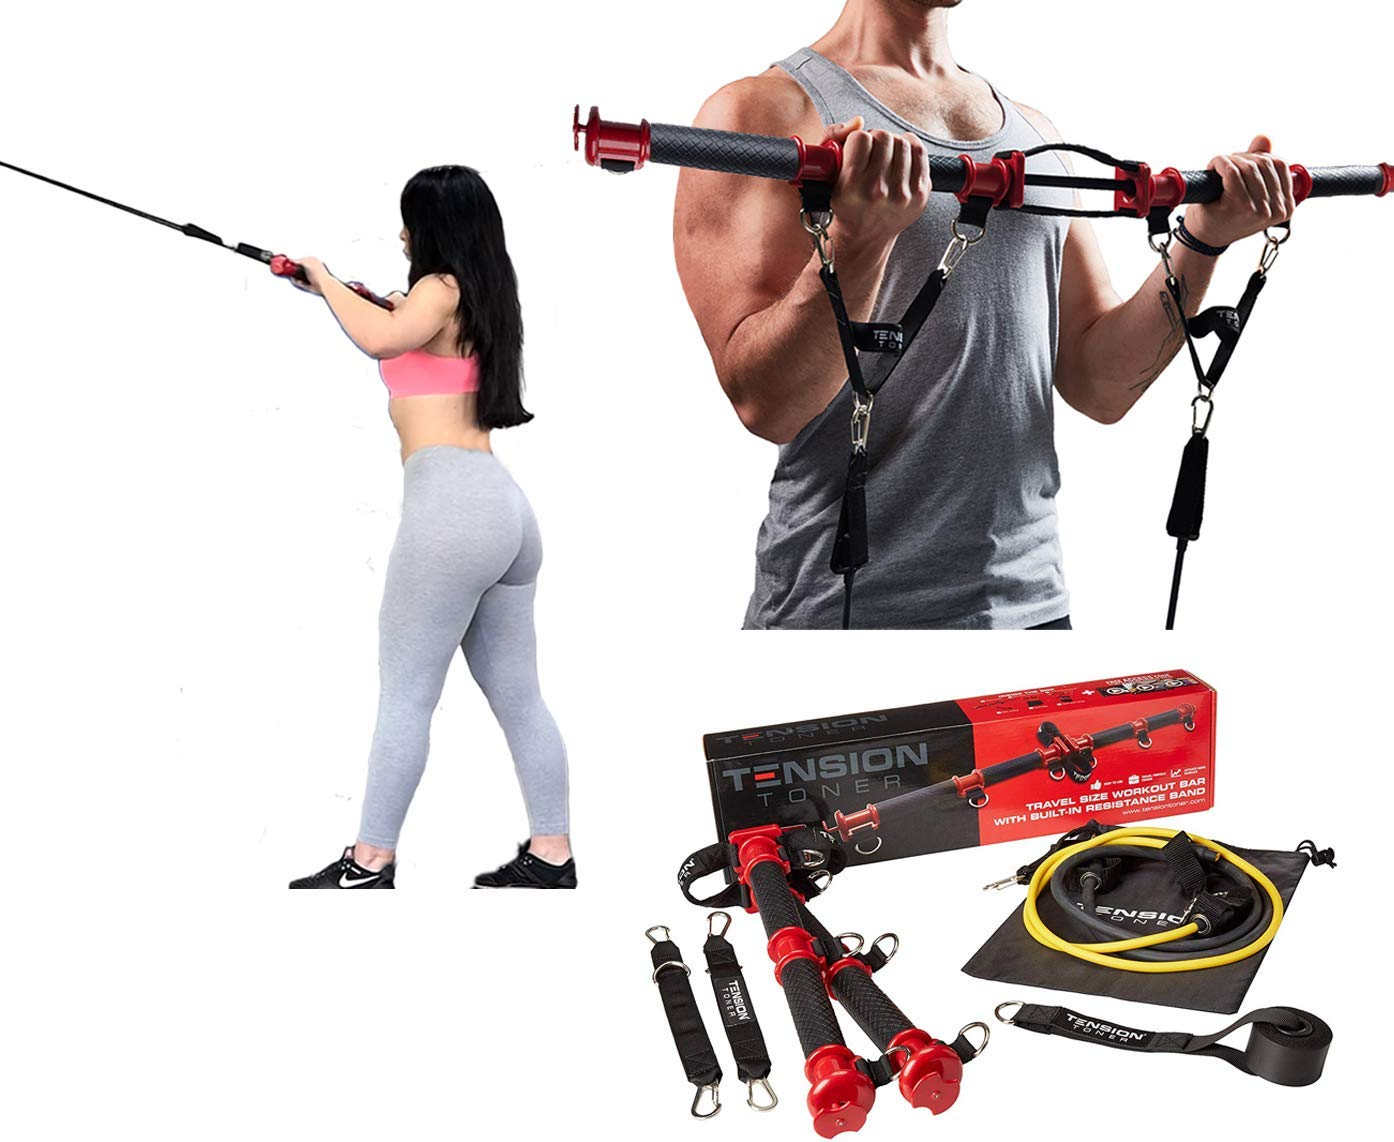 TENSION TONER: Workout Your Muscles with Over 70 Different Full Body Exercises to Build Strength & Lean Muscle - Patented Portable Home Gym